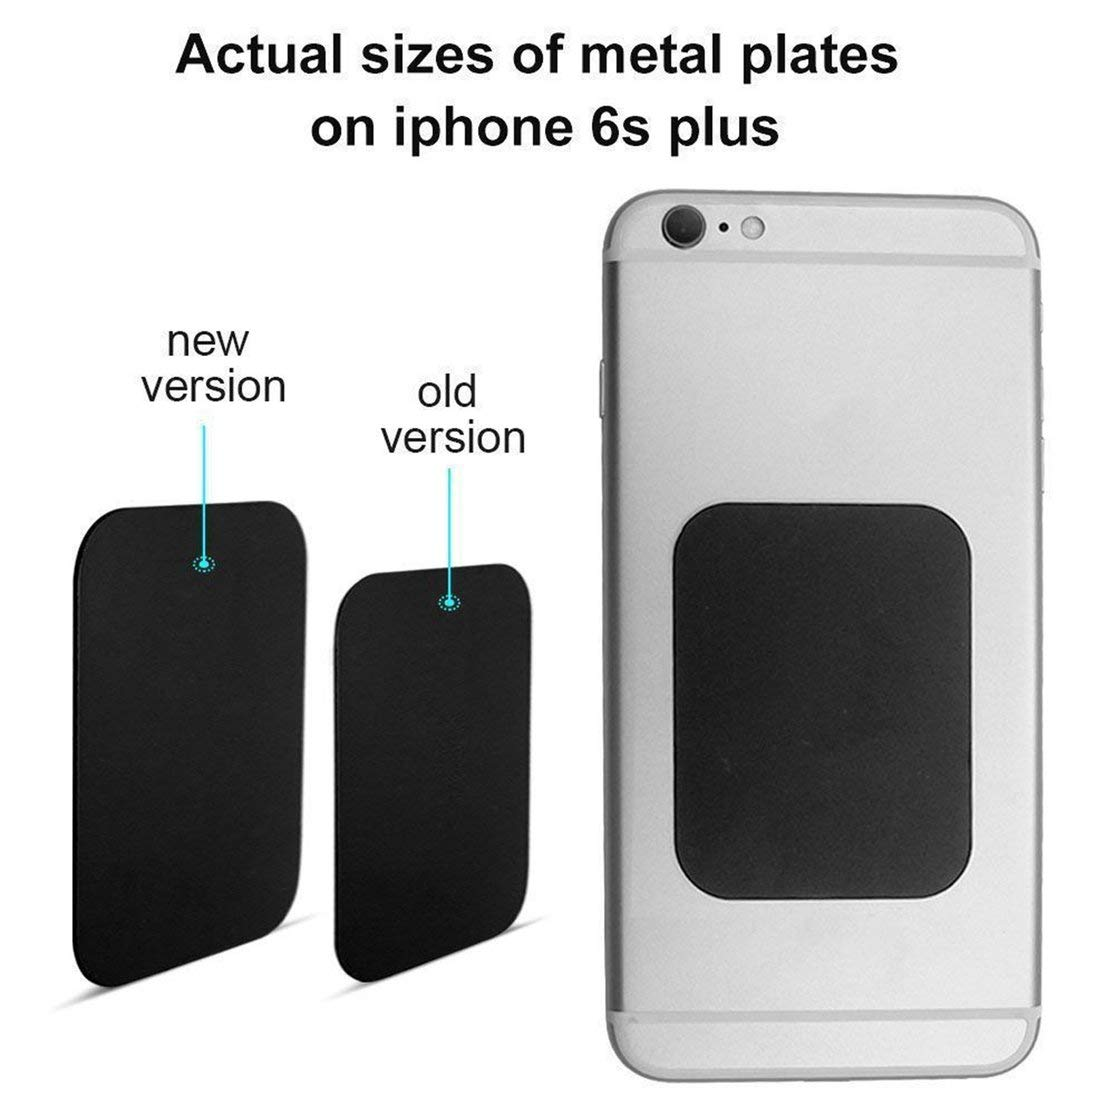 LouiseEvel215 8pcs Metal Plates Sticker Car Mount Replace Metal Adhesive Plate For Magnetic Phone Car Holder Super Thin Steel Insert Plate